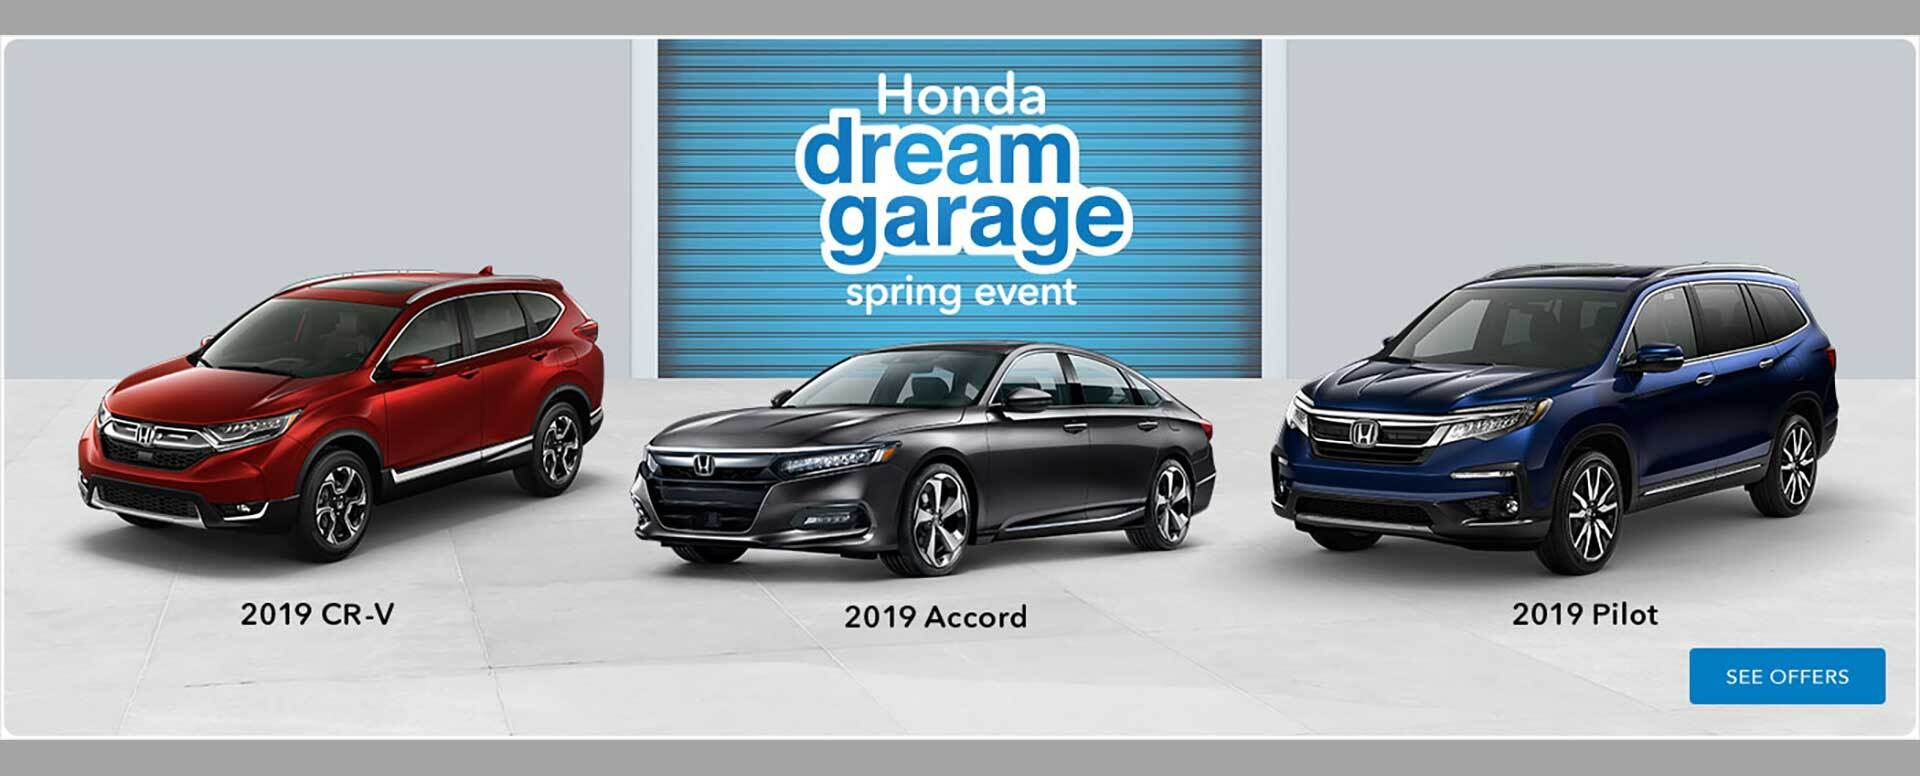 2019 Honda Dream Garage Event